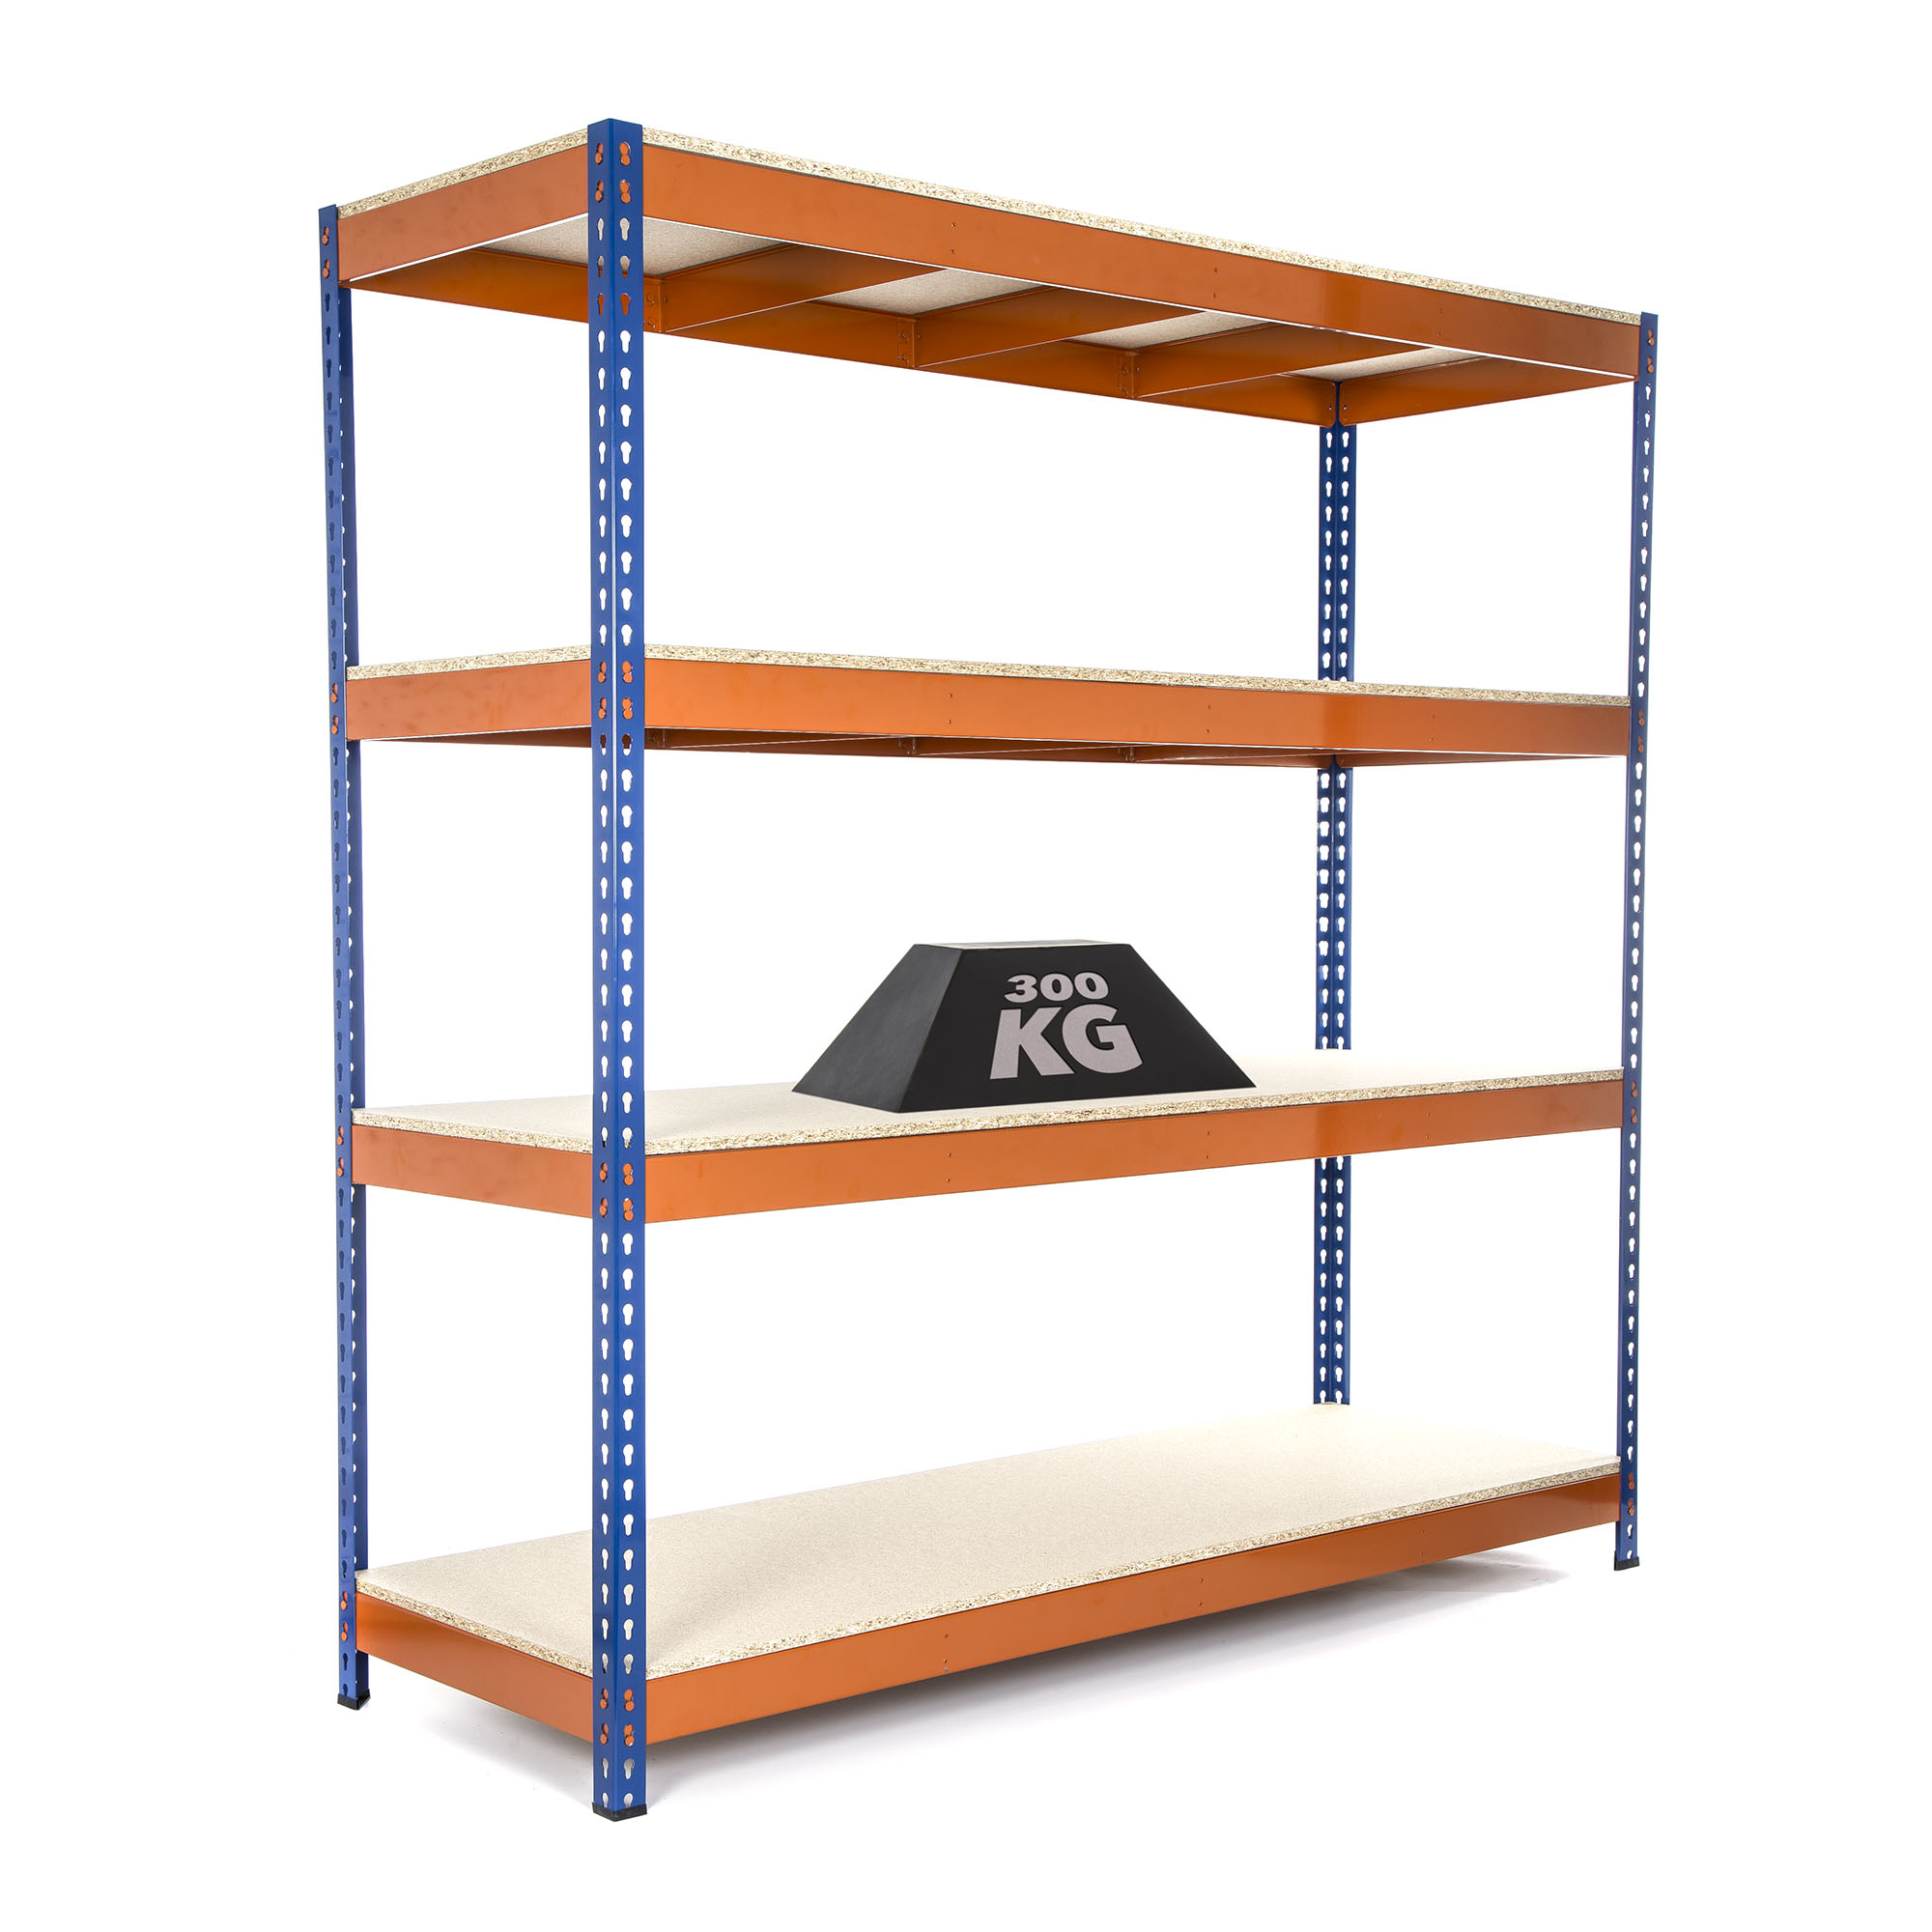 Medium Racking suitable for Home, Garages, Workshop Storage etc - Assembly Instructions